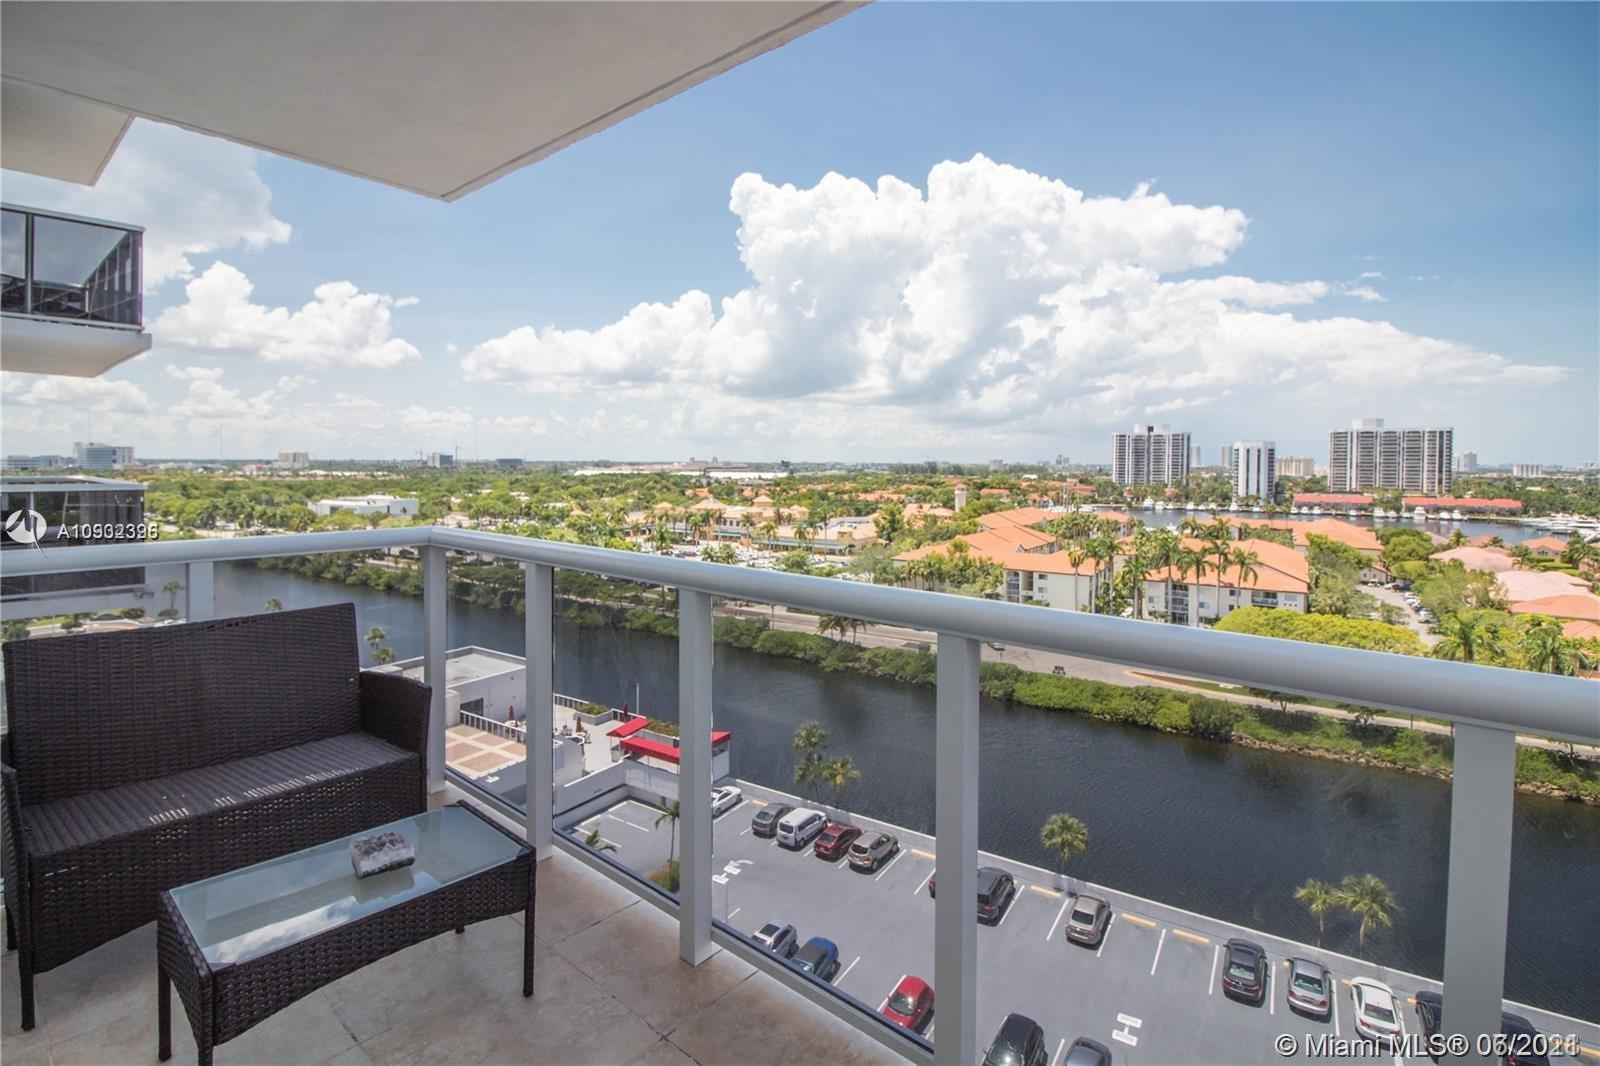 Eldorado Tower Two #1101 - 3675 N COUNTRY CLUB DR #1101, Aventura, FL 33180